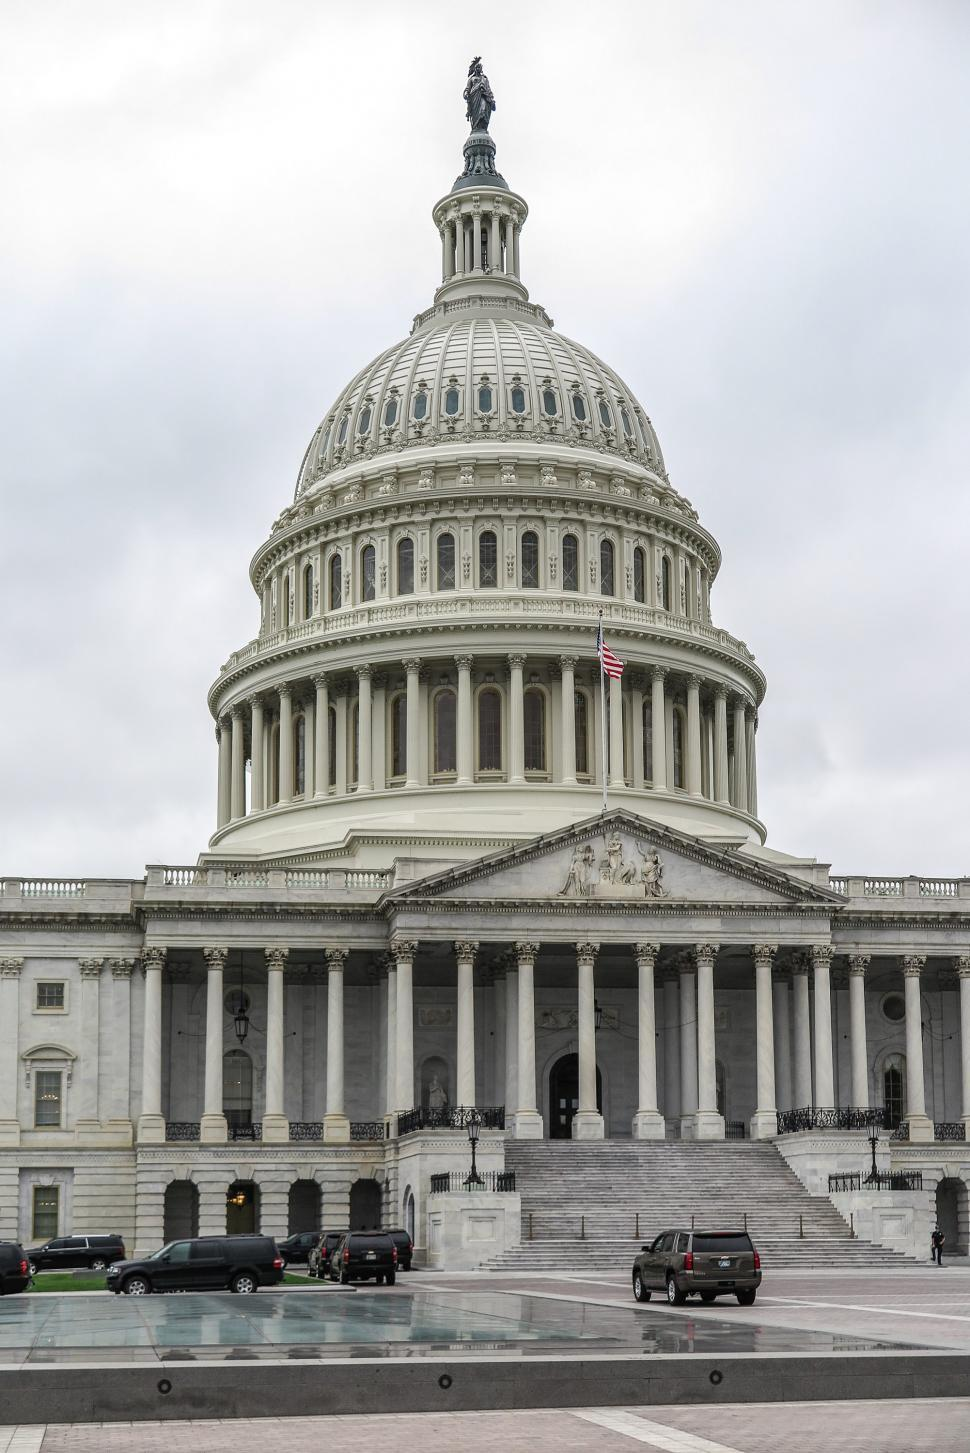 Download Free Stock HD Photo of Dome and SUVs at US Captiol Online